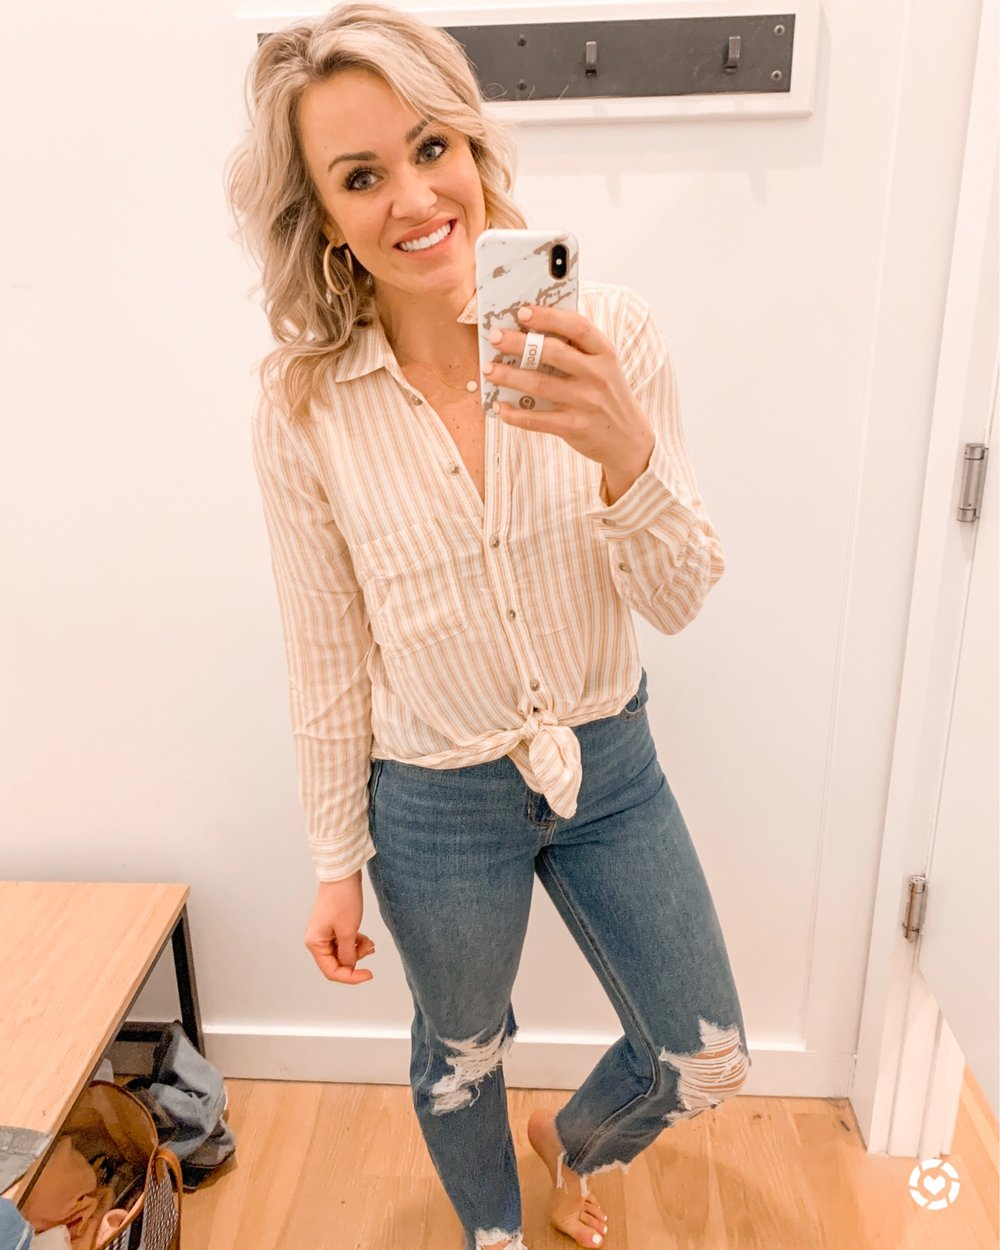 Dressing Room Dairies: American Eagle - Here is a top selling brand for you all! American Eagle has hit an all time high on Styled by Sequins. I mean how could it not? So many cute pieces, which I'm sharing some of my favorites with y'all here on Styled by Sequins blog. Read more by clicking the button below…